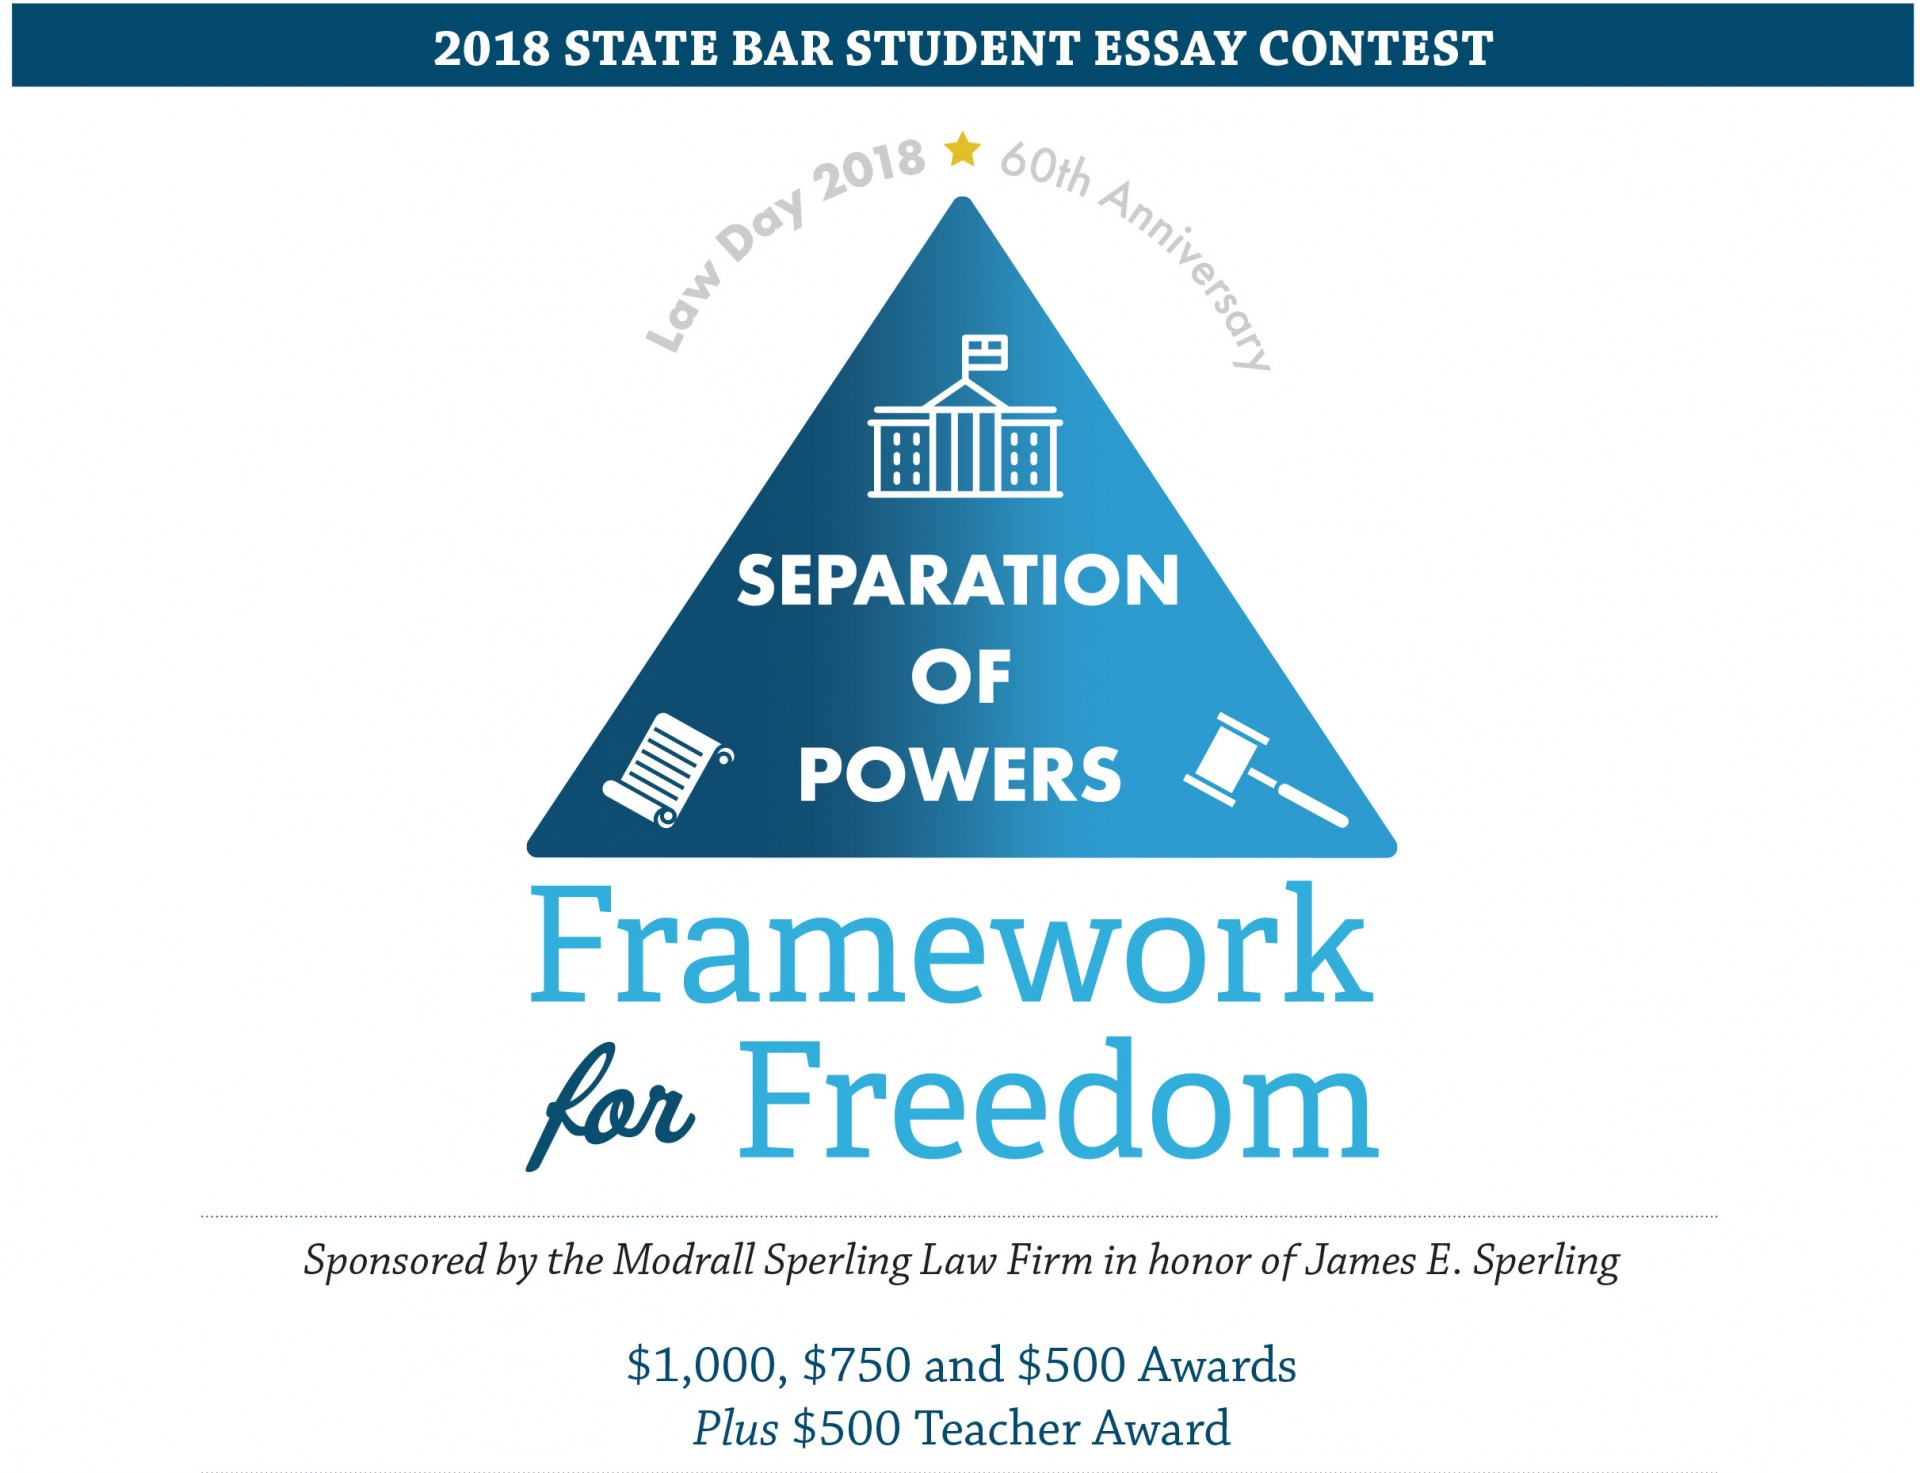 010 Separationofpowers Essay Example Contests For High School Students Staggering 2017 1920